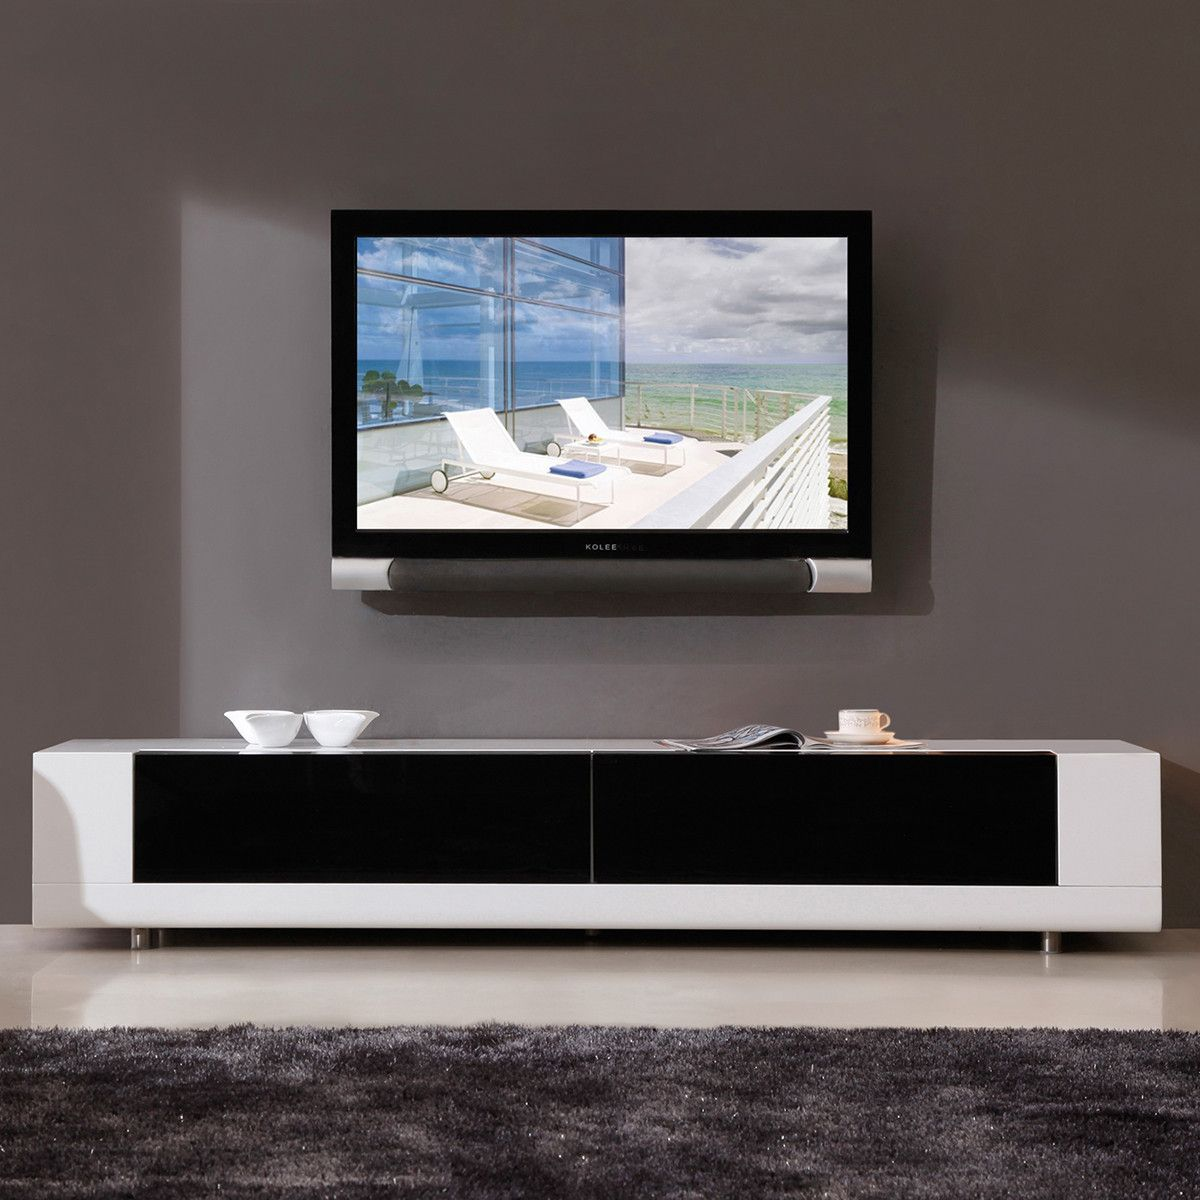 Minimalist Modern Media Cabinet I Love The Look Of This White